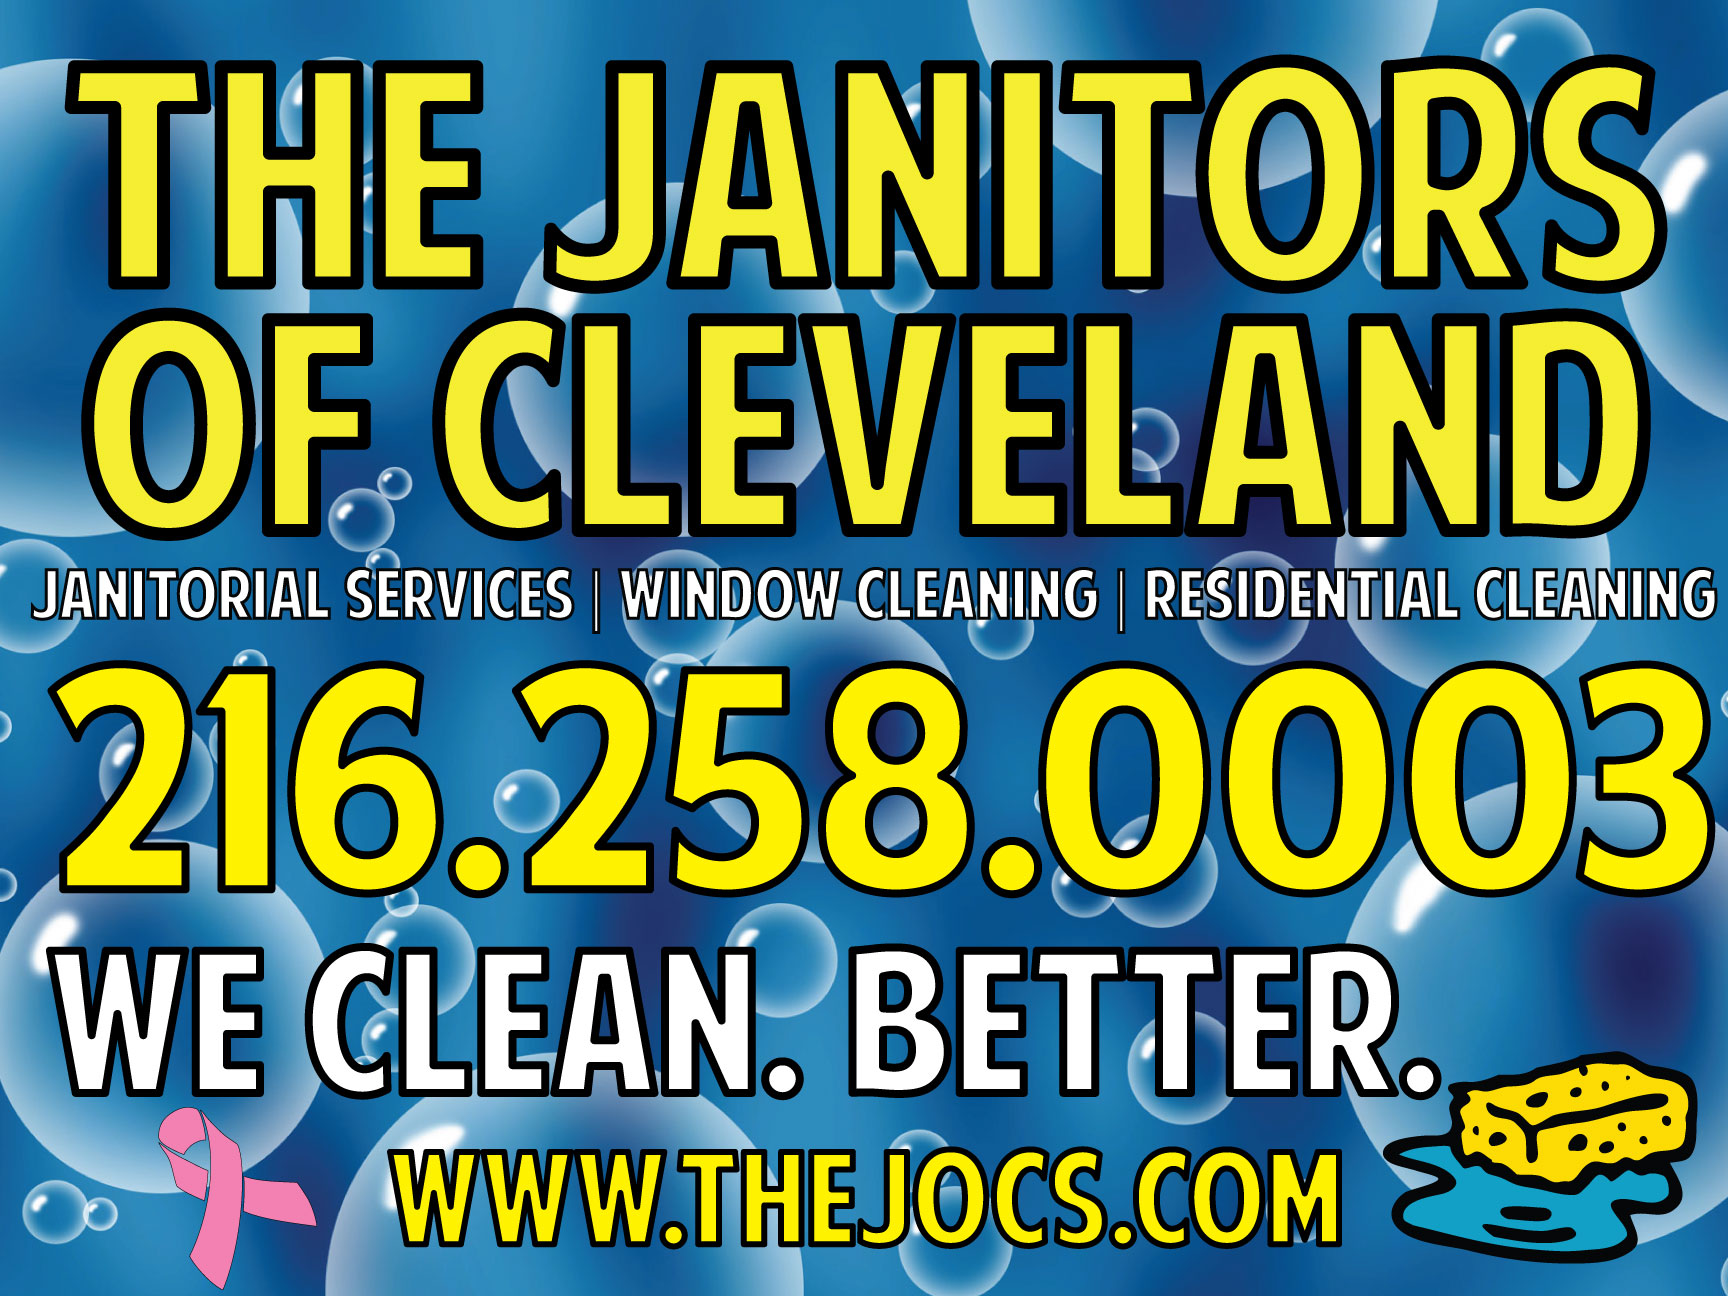 Janitors-of-cleveland-copy